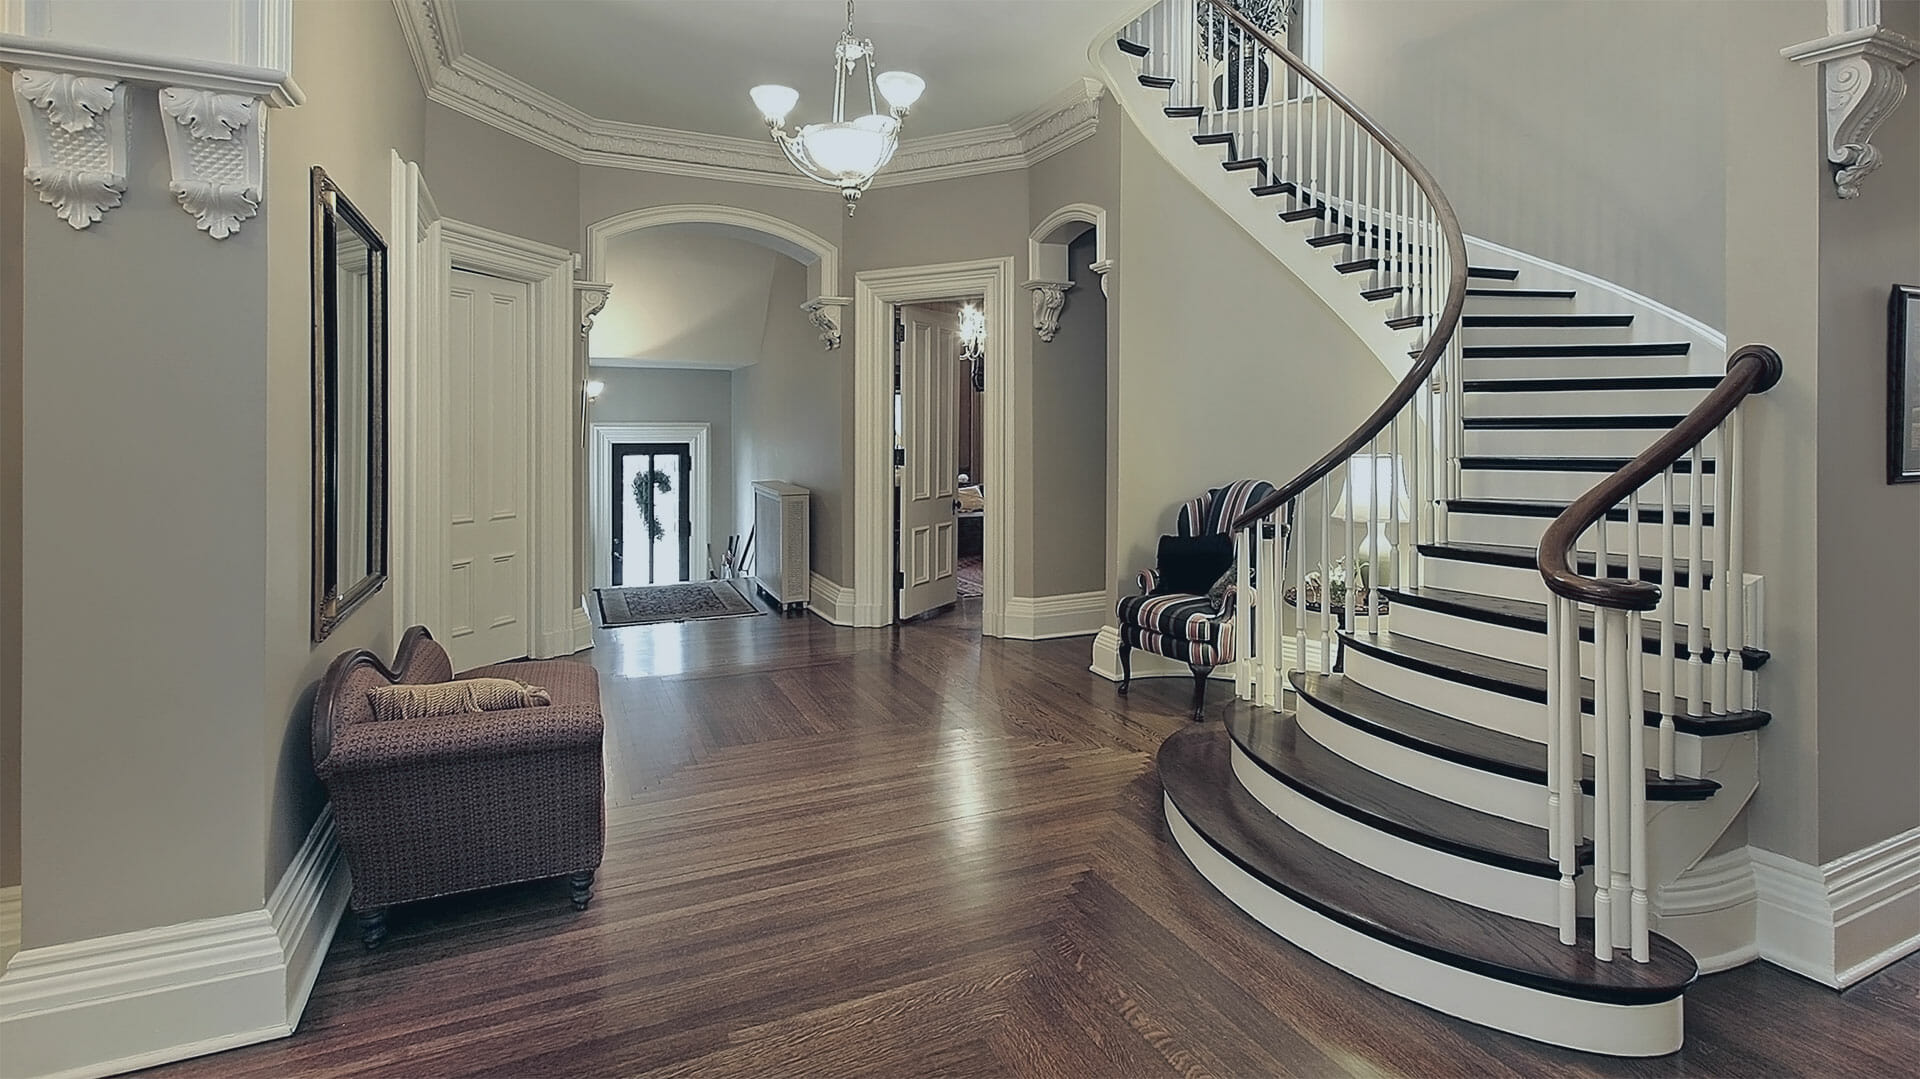 Grand staircase opening into a foyer with wood floors, taupe walls and white crown molding.